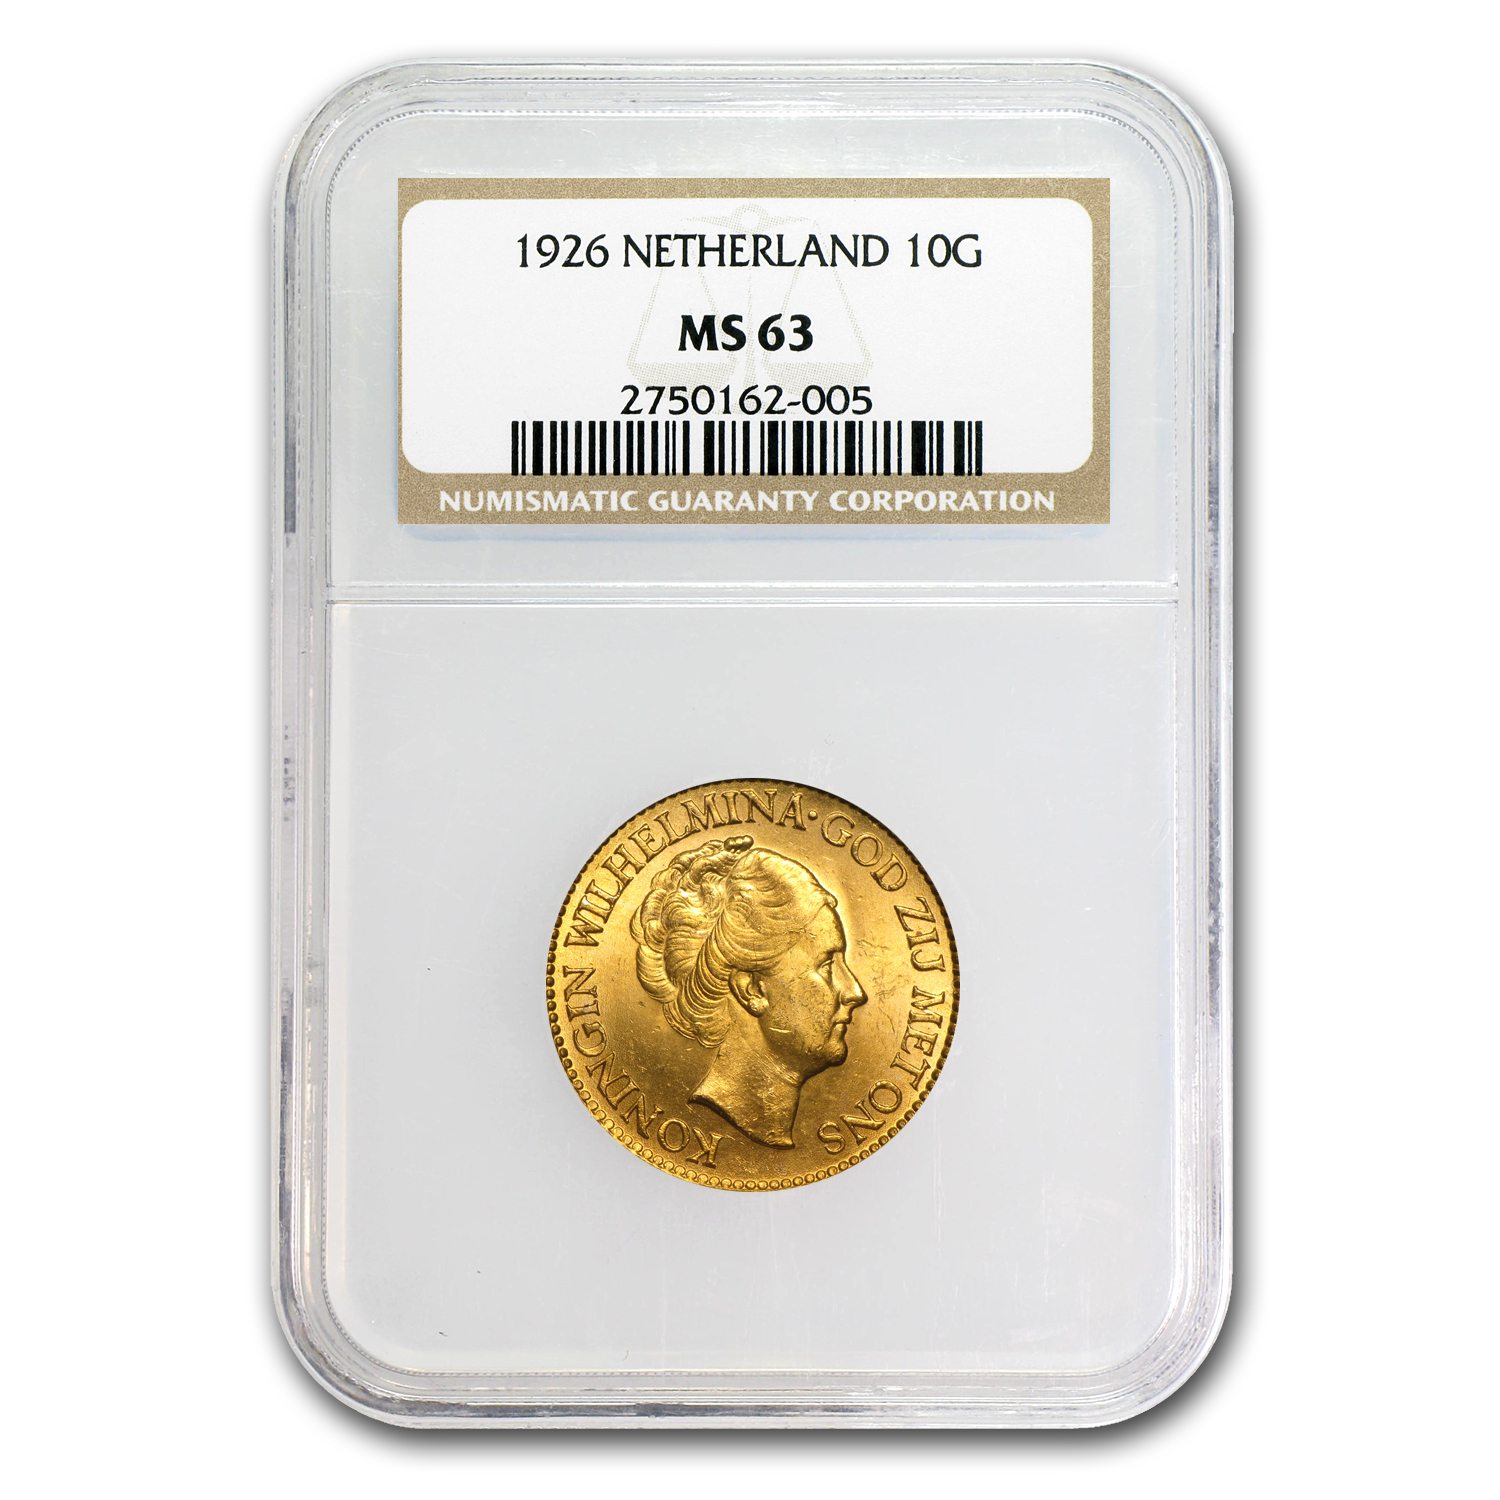 Netherlands 1911-1933 10 Gulden Gold Coin - MS-63 NGC/PCGS